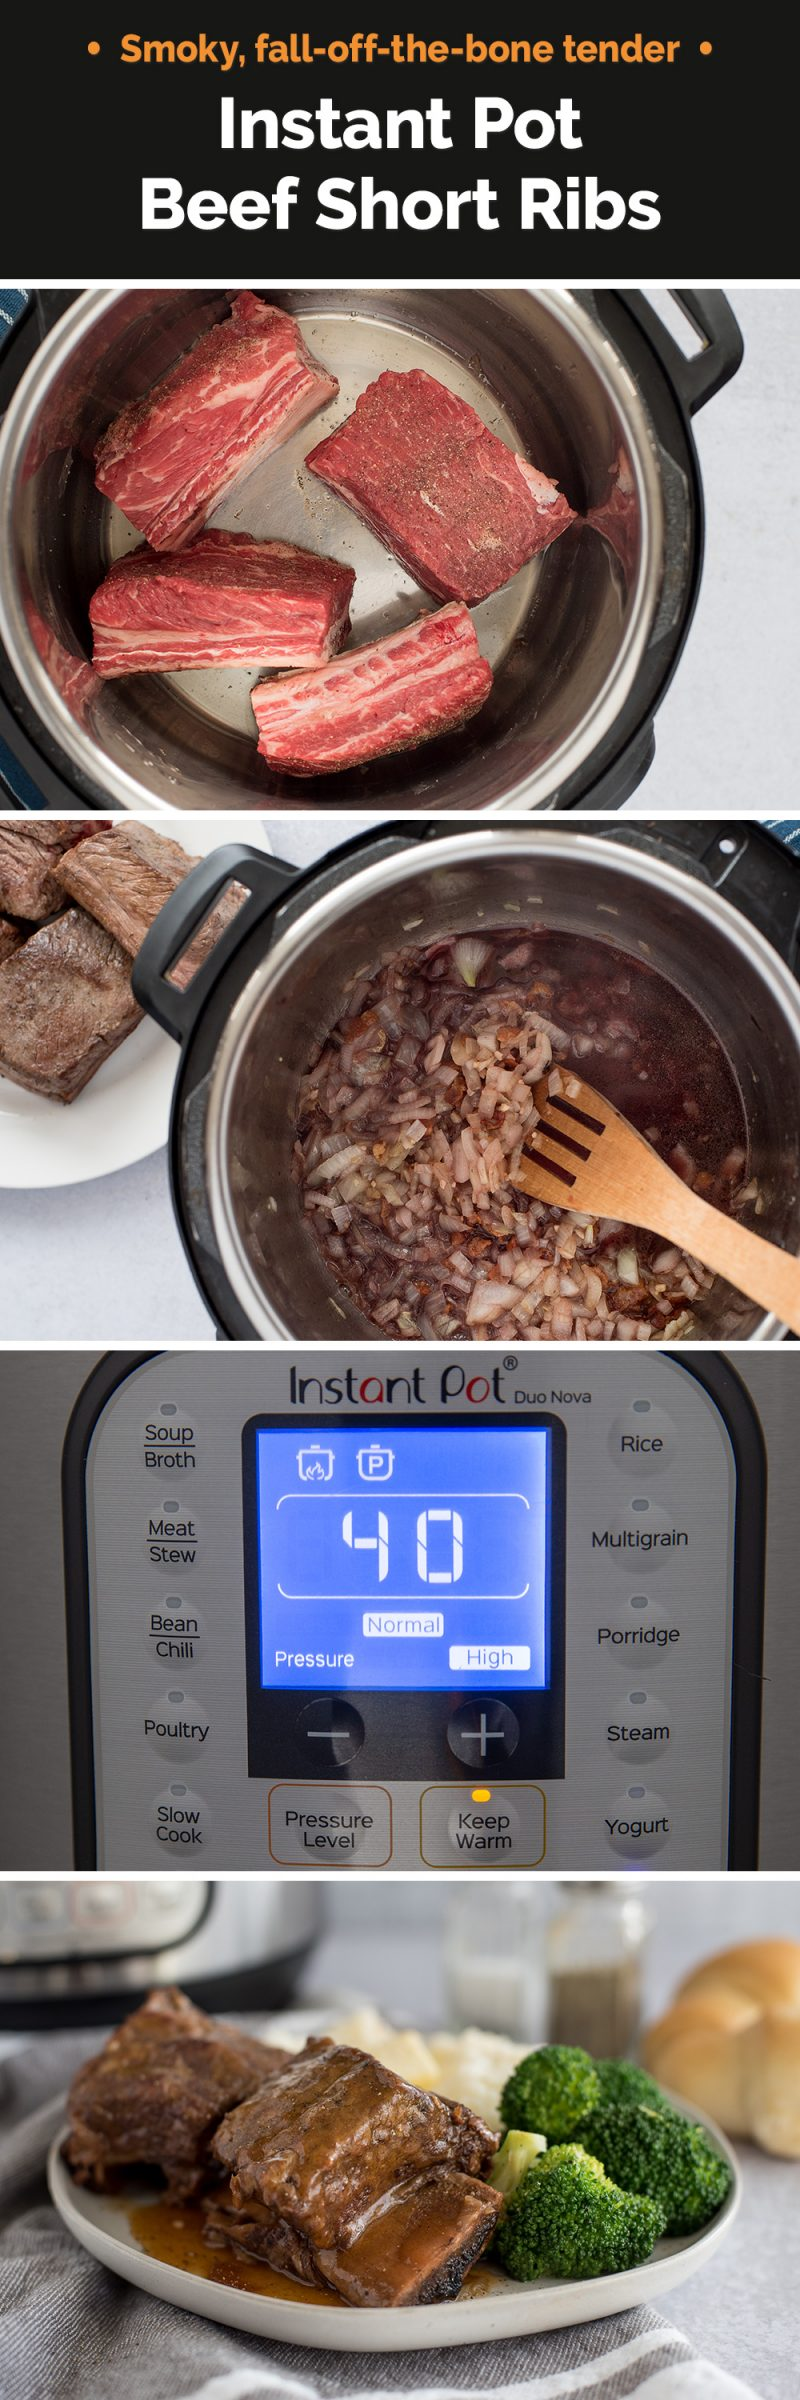 Instant Pot Short Ribs made quick and easy!